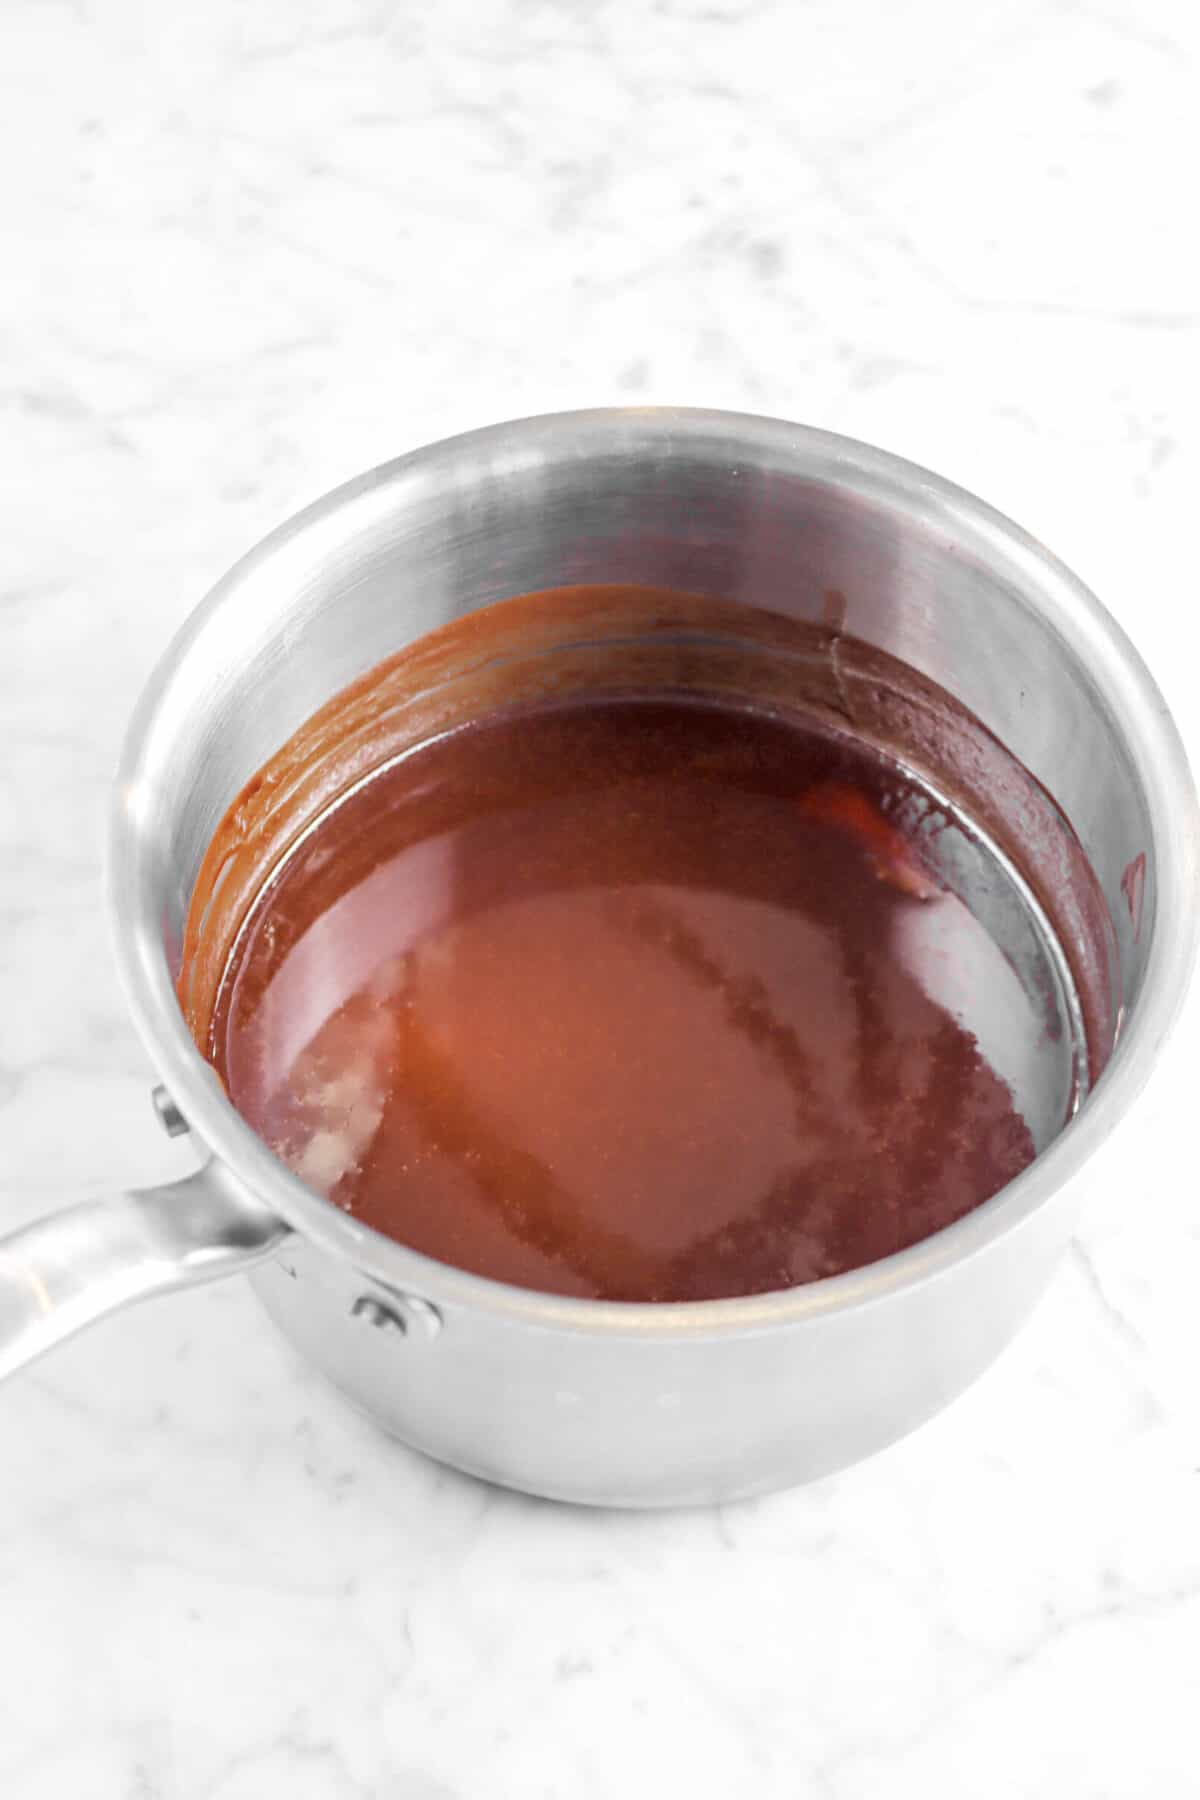 melted butter and chocolate in a small pot